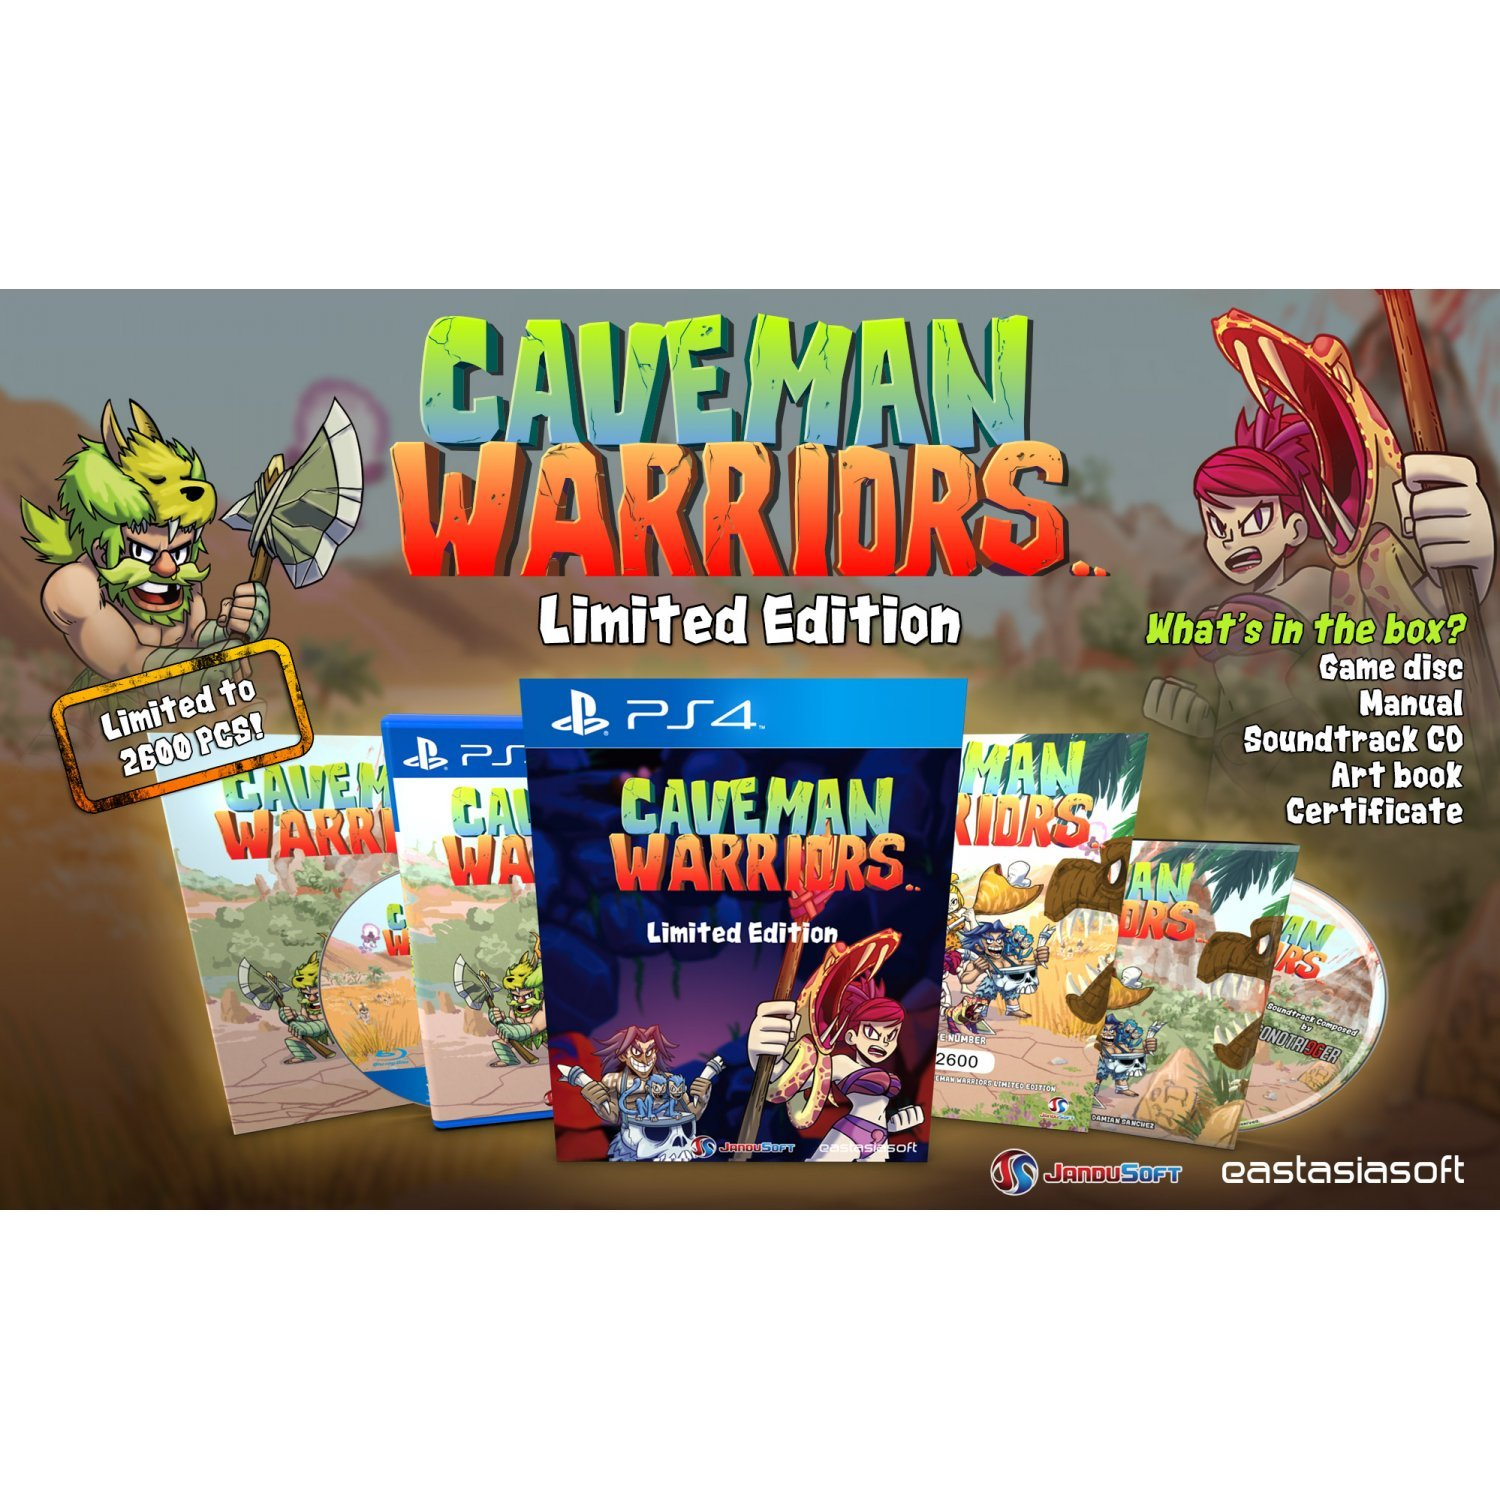 Warriors Book Series Games: Caveman Warriors [Limited Edition] Play-Asia.com Exclusive